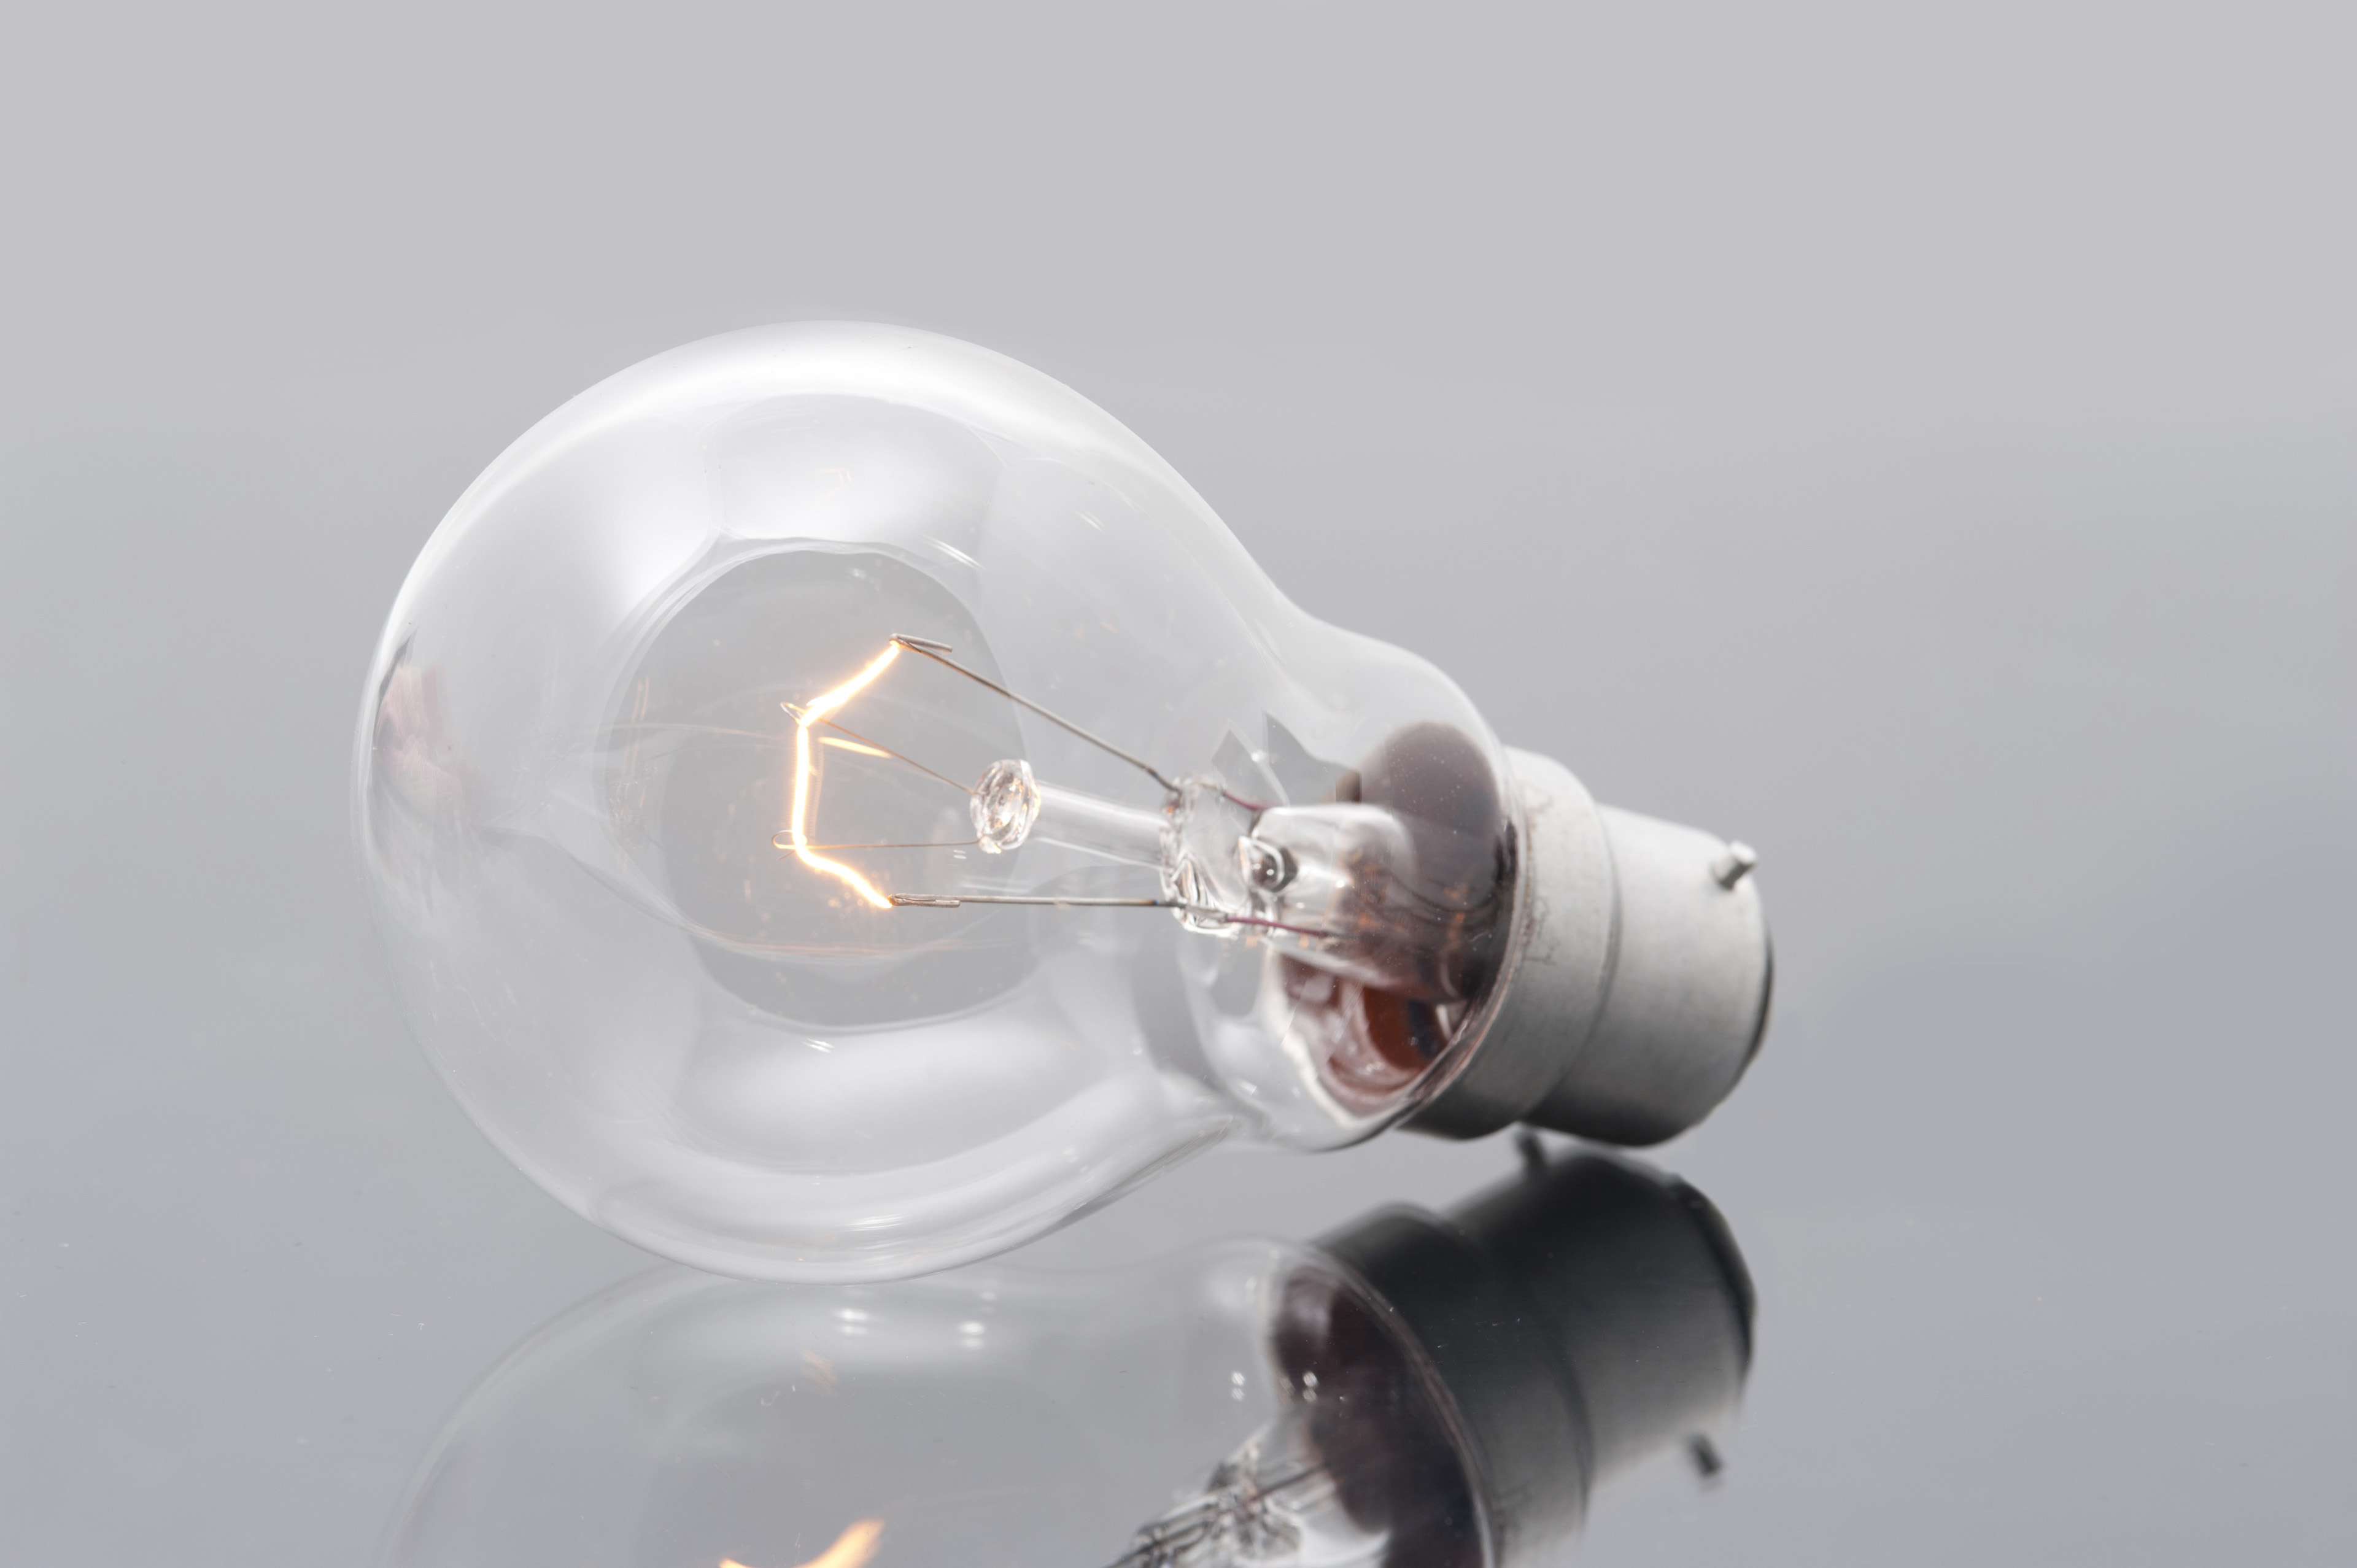 Domestic light bulb with a bayonet fitting and a glowing filament on a reflective grey surface for power and energy or bright ideas concepts